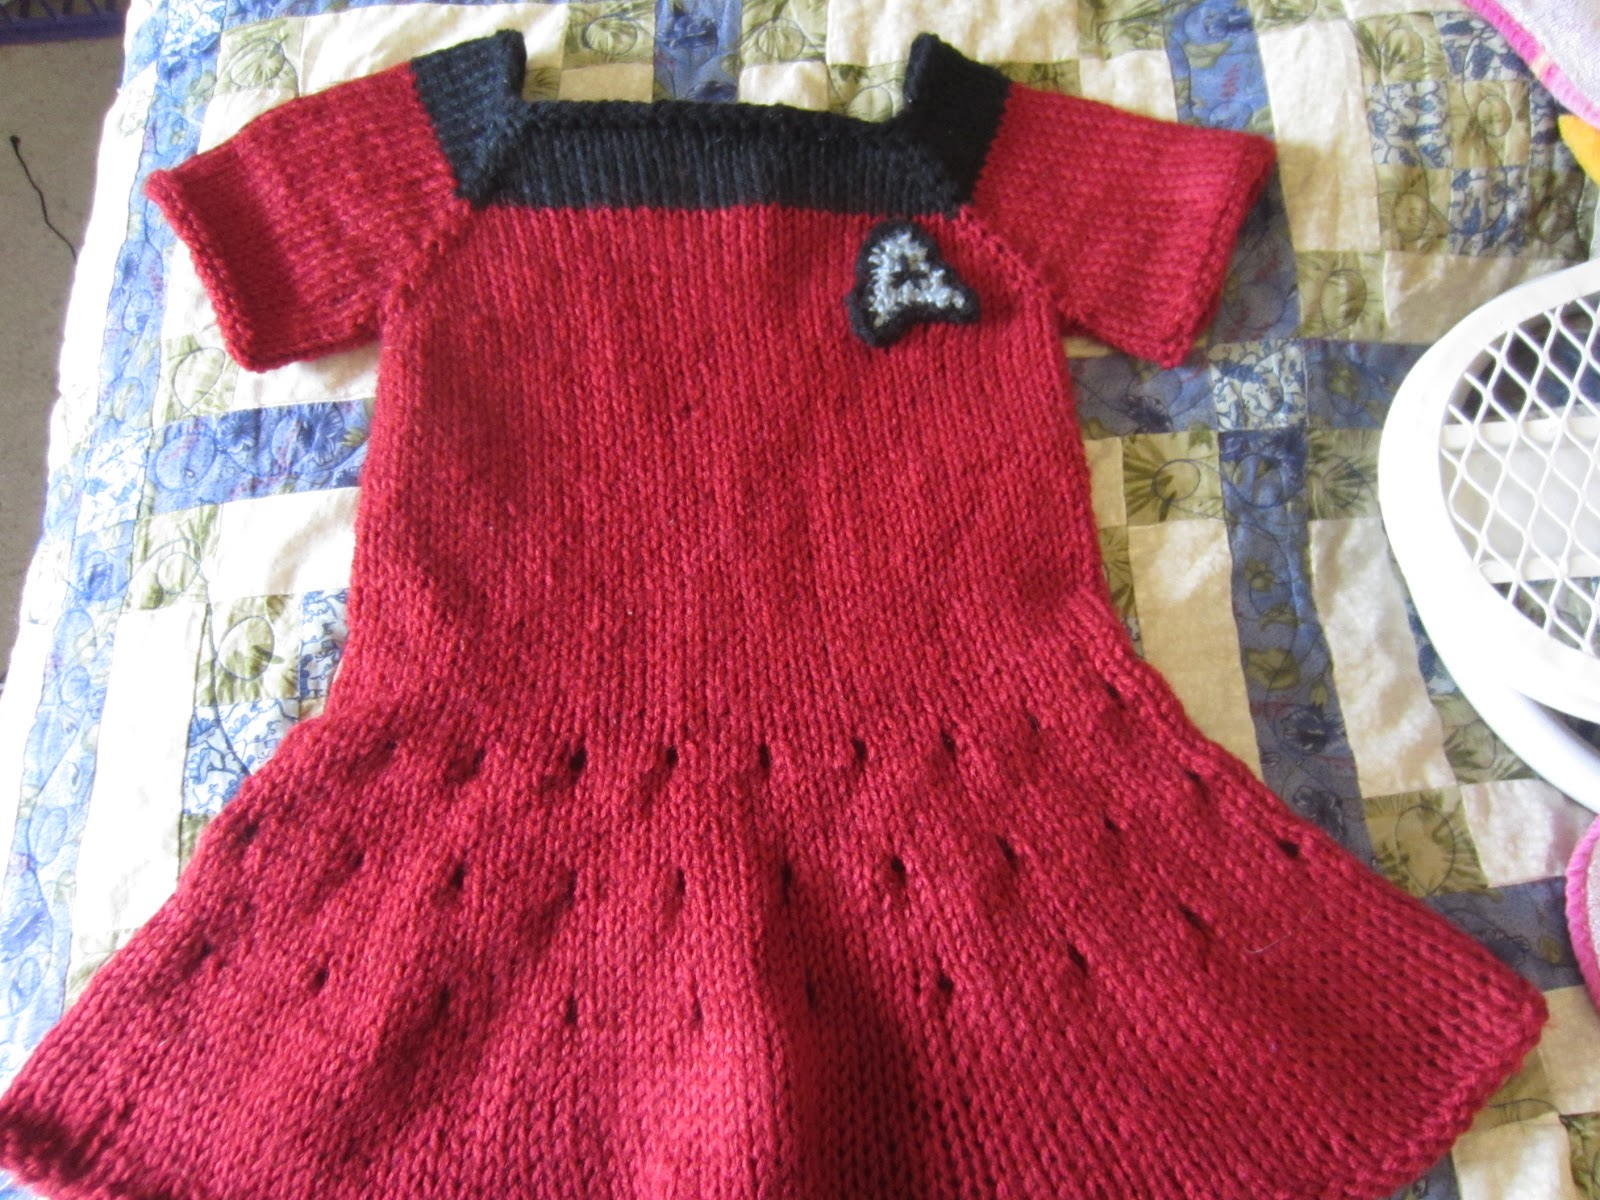 Jessica Snell\'s blog: Knitted Star Trek Dresses (and a few other FO\'s)